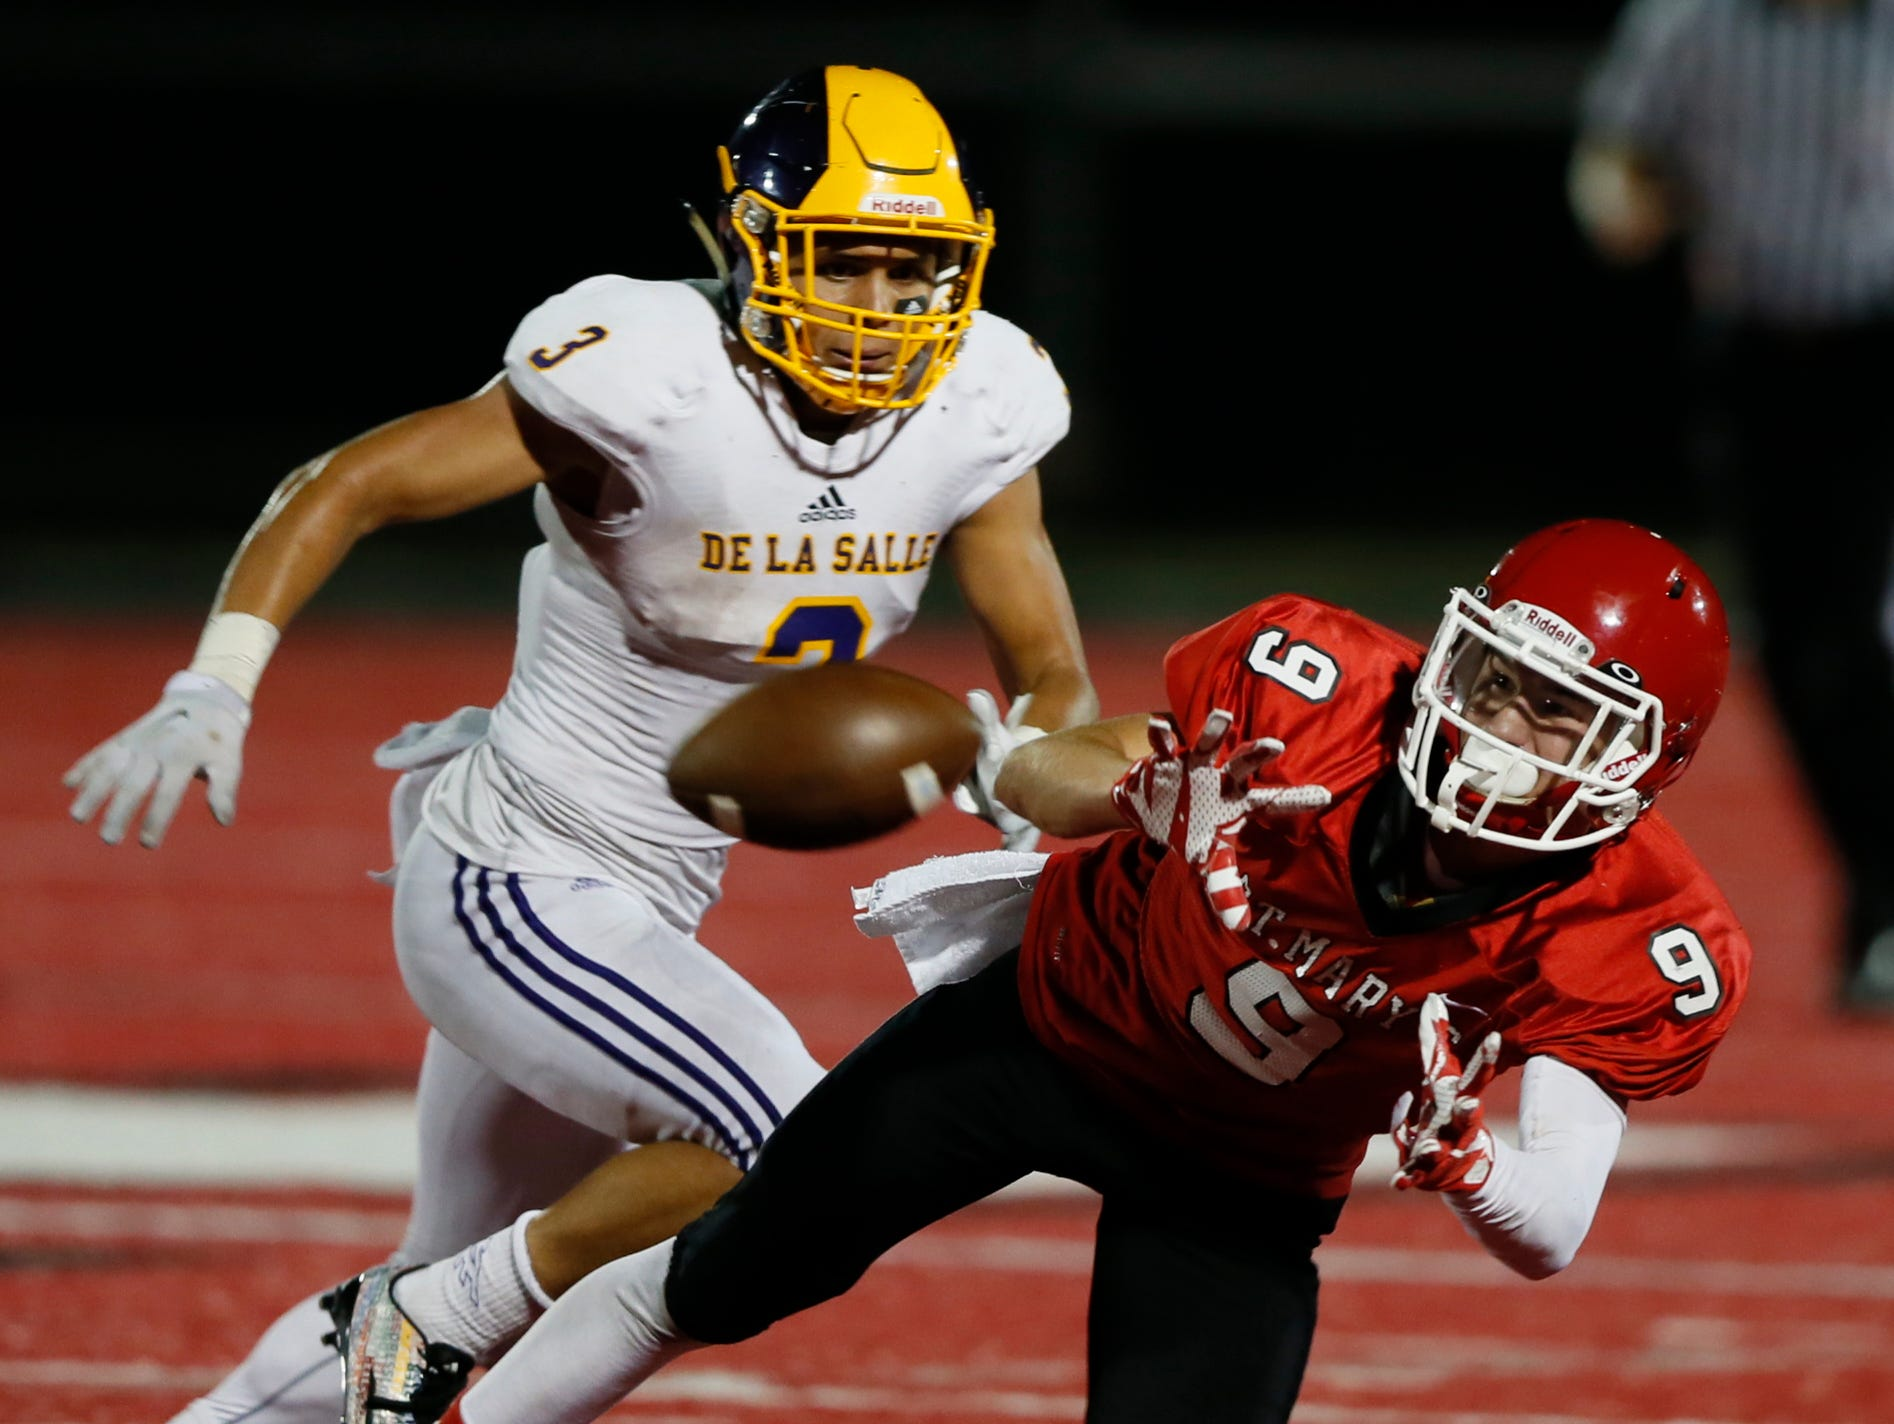 Orchard Lake St. Mary's Griffin Sheposh gets pass in his hands but bobbled it hitting the ground for an incomplete pass in front of Warren De La Salle Tru Wilson in the second half Friday at St. Mary's.